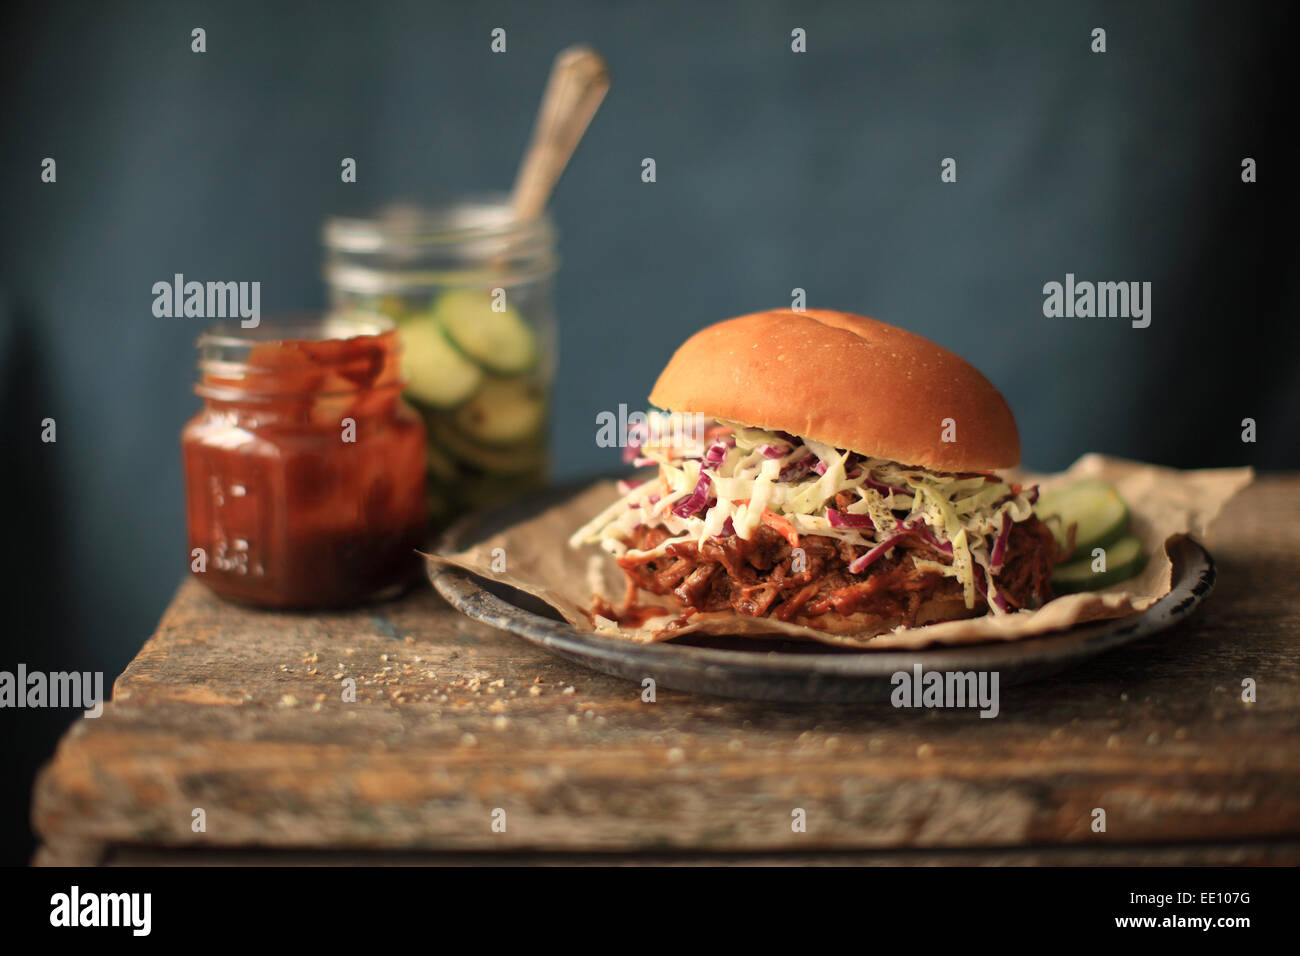 A Pulled Pork Sandwich served with Slaw and pickles. - Stock Image